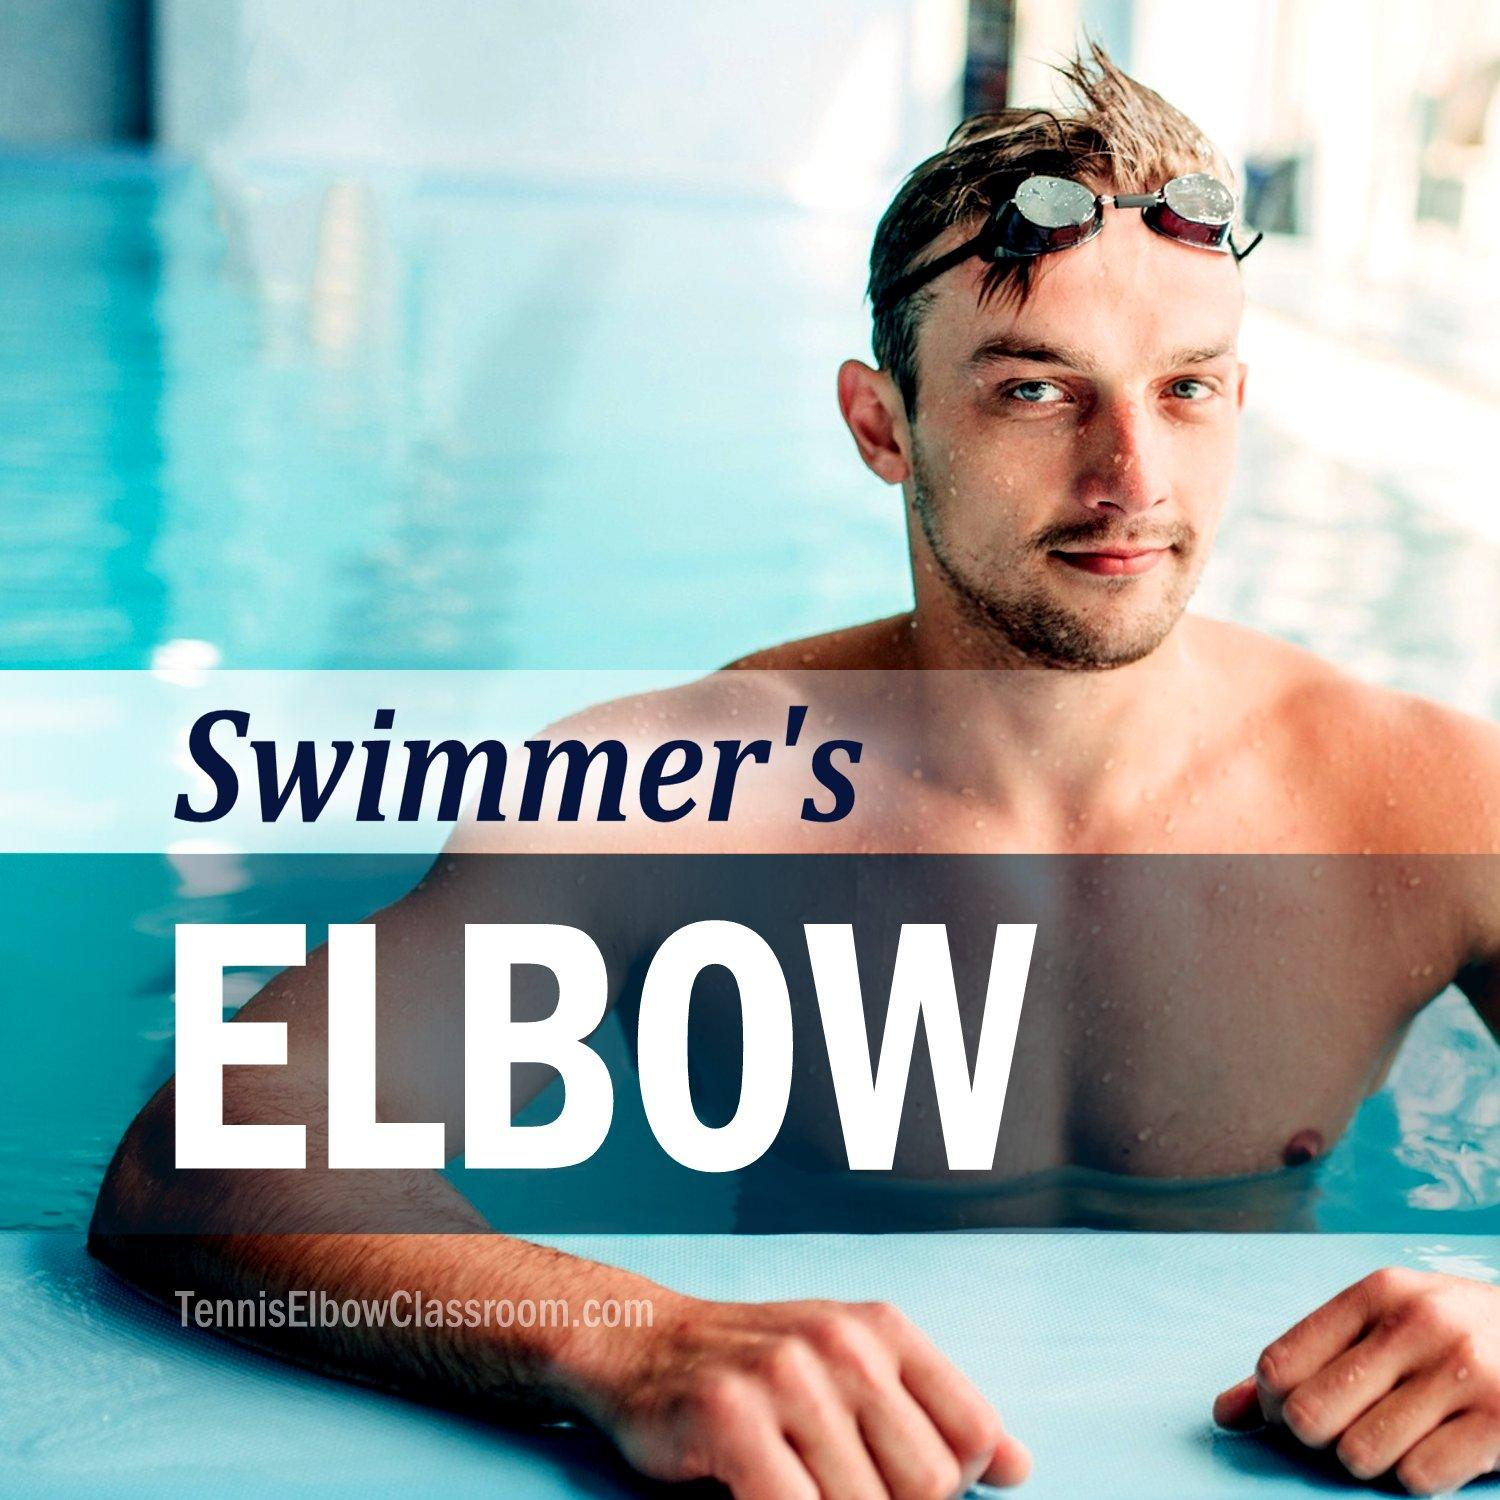 Swimmer's Elbow Podcast Cover Image